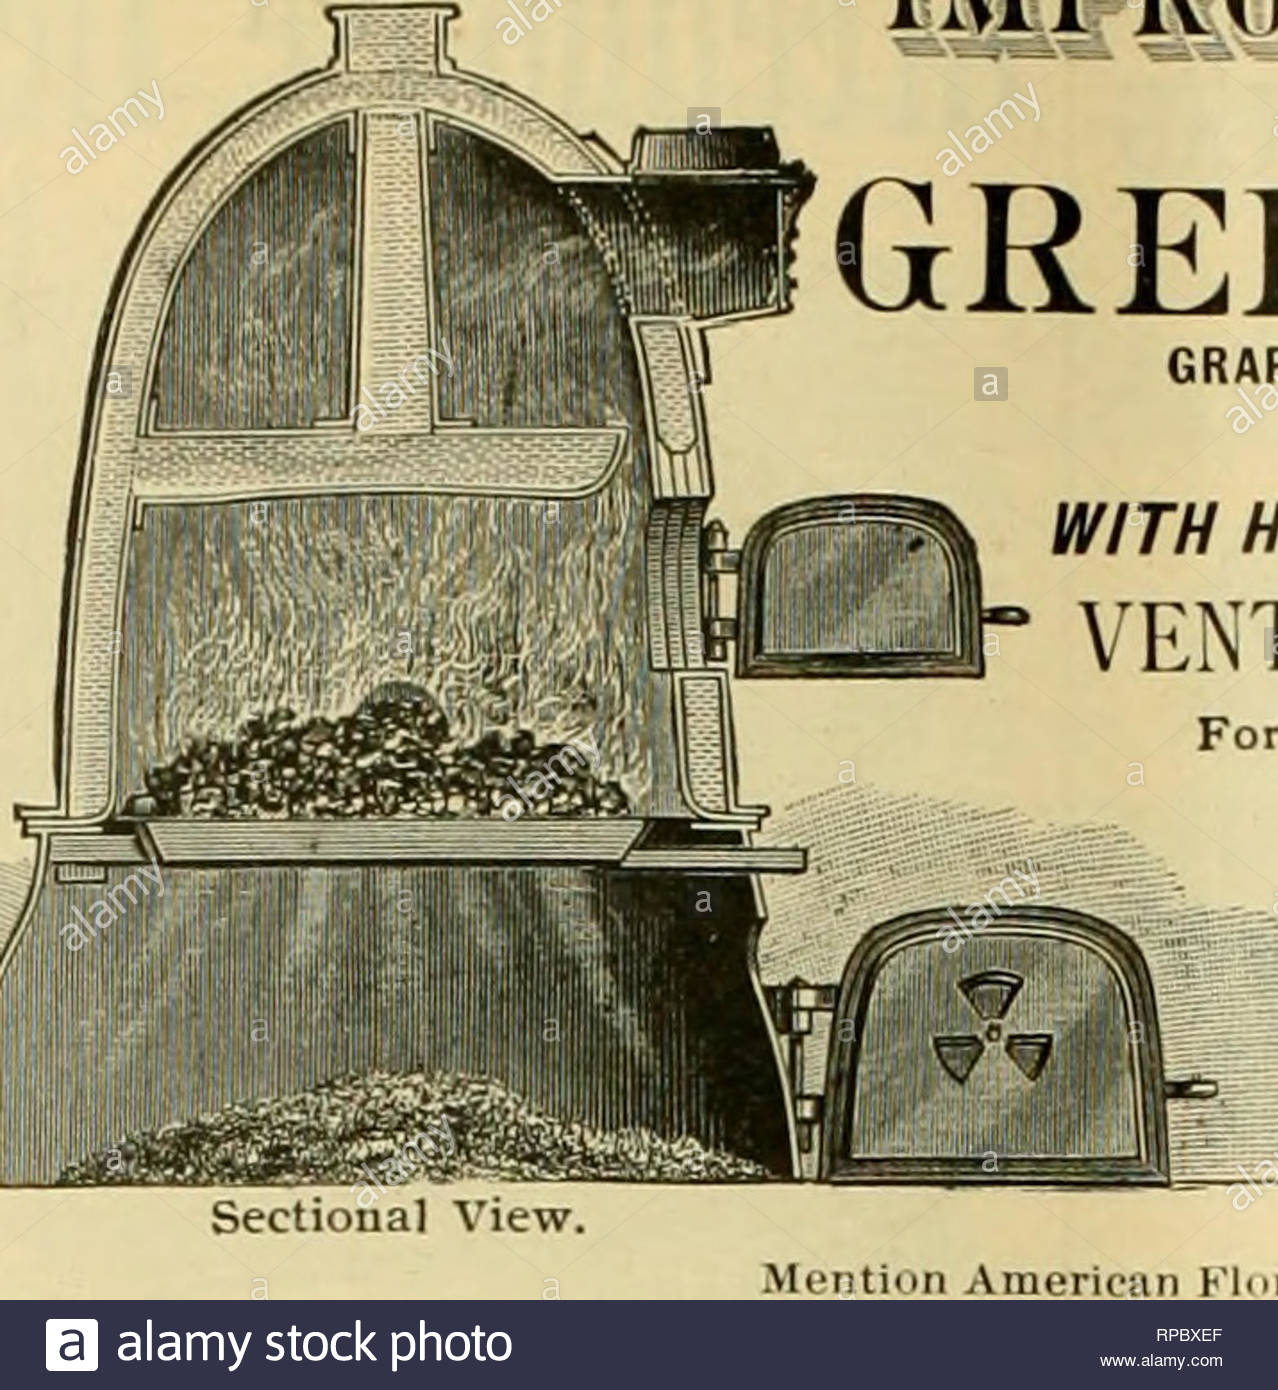 the american florist a weekly journal for the trade floriculture florists 460 the american florist jitnc i index to advertisers i quotquot w tvi x lvv quotquot i ivvl 11 siiil n ri mrquot quot heniu rsniil tergtcs wilson wm c 4i2 jeivii k 47 wolff i mlg co 48 i t h i ii 4 wood i c and bro4i kiill 1 4 i i ynunk thosirampc 44i conservatories greenhouses etc erected in any part of tlie i s or canala helliwell pat imperishable syst RPBXEF